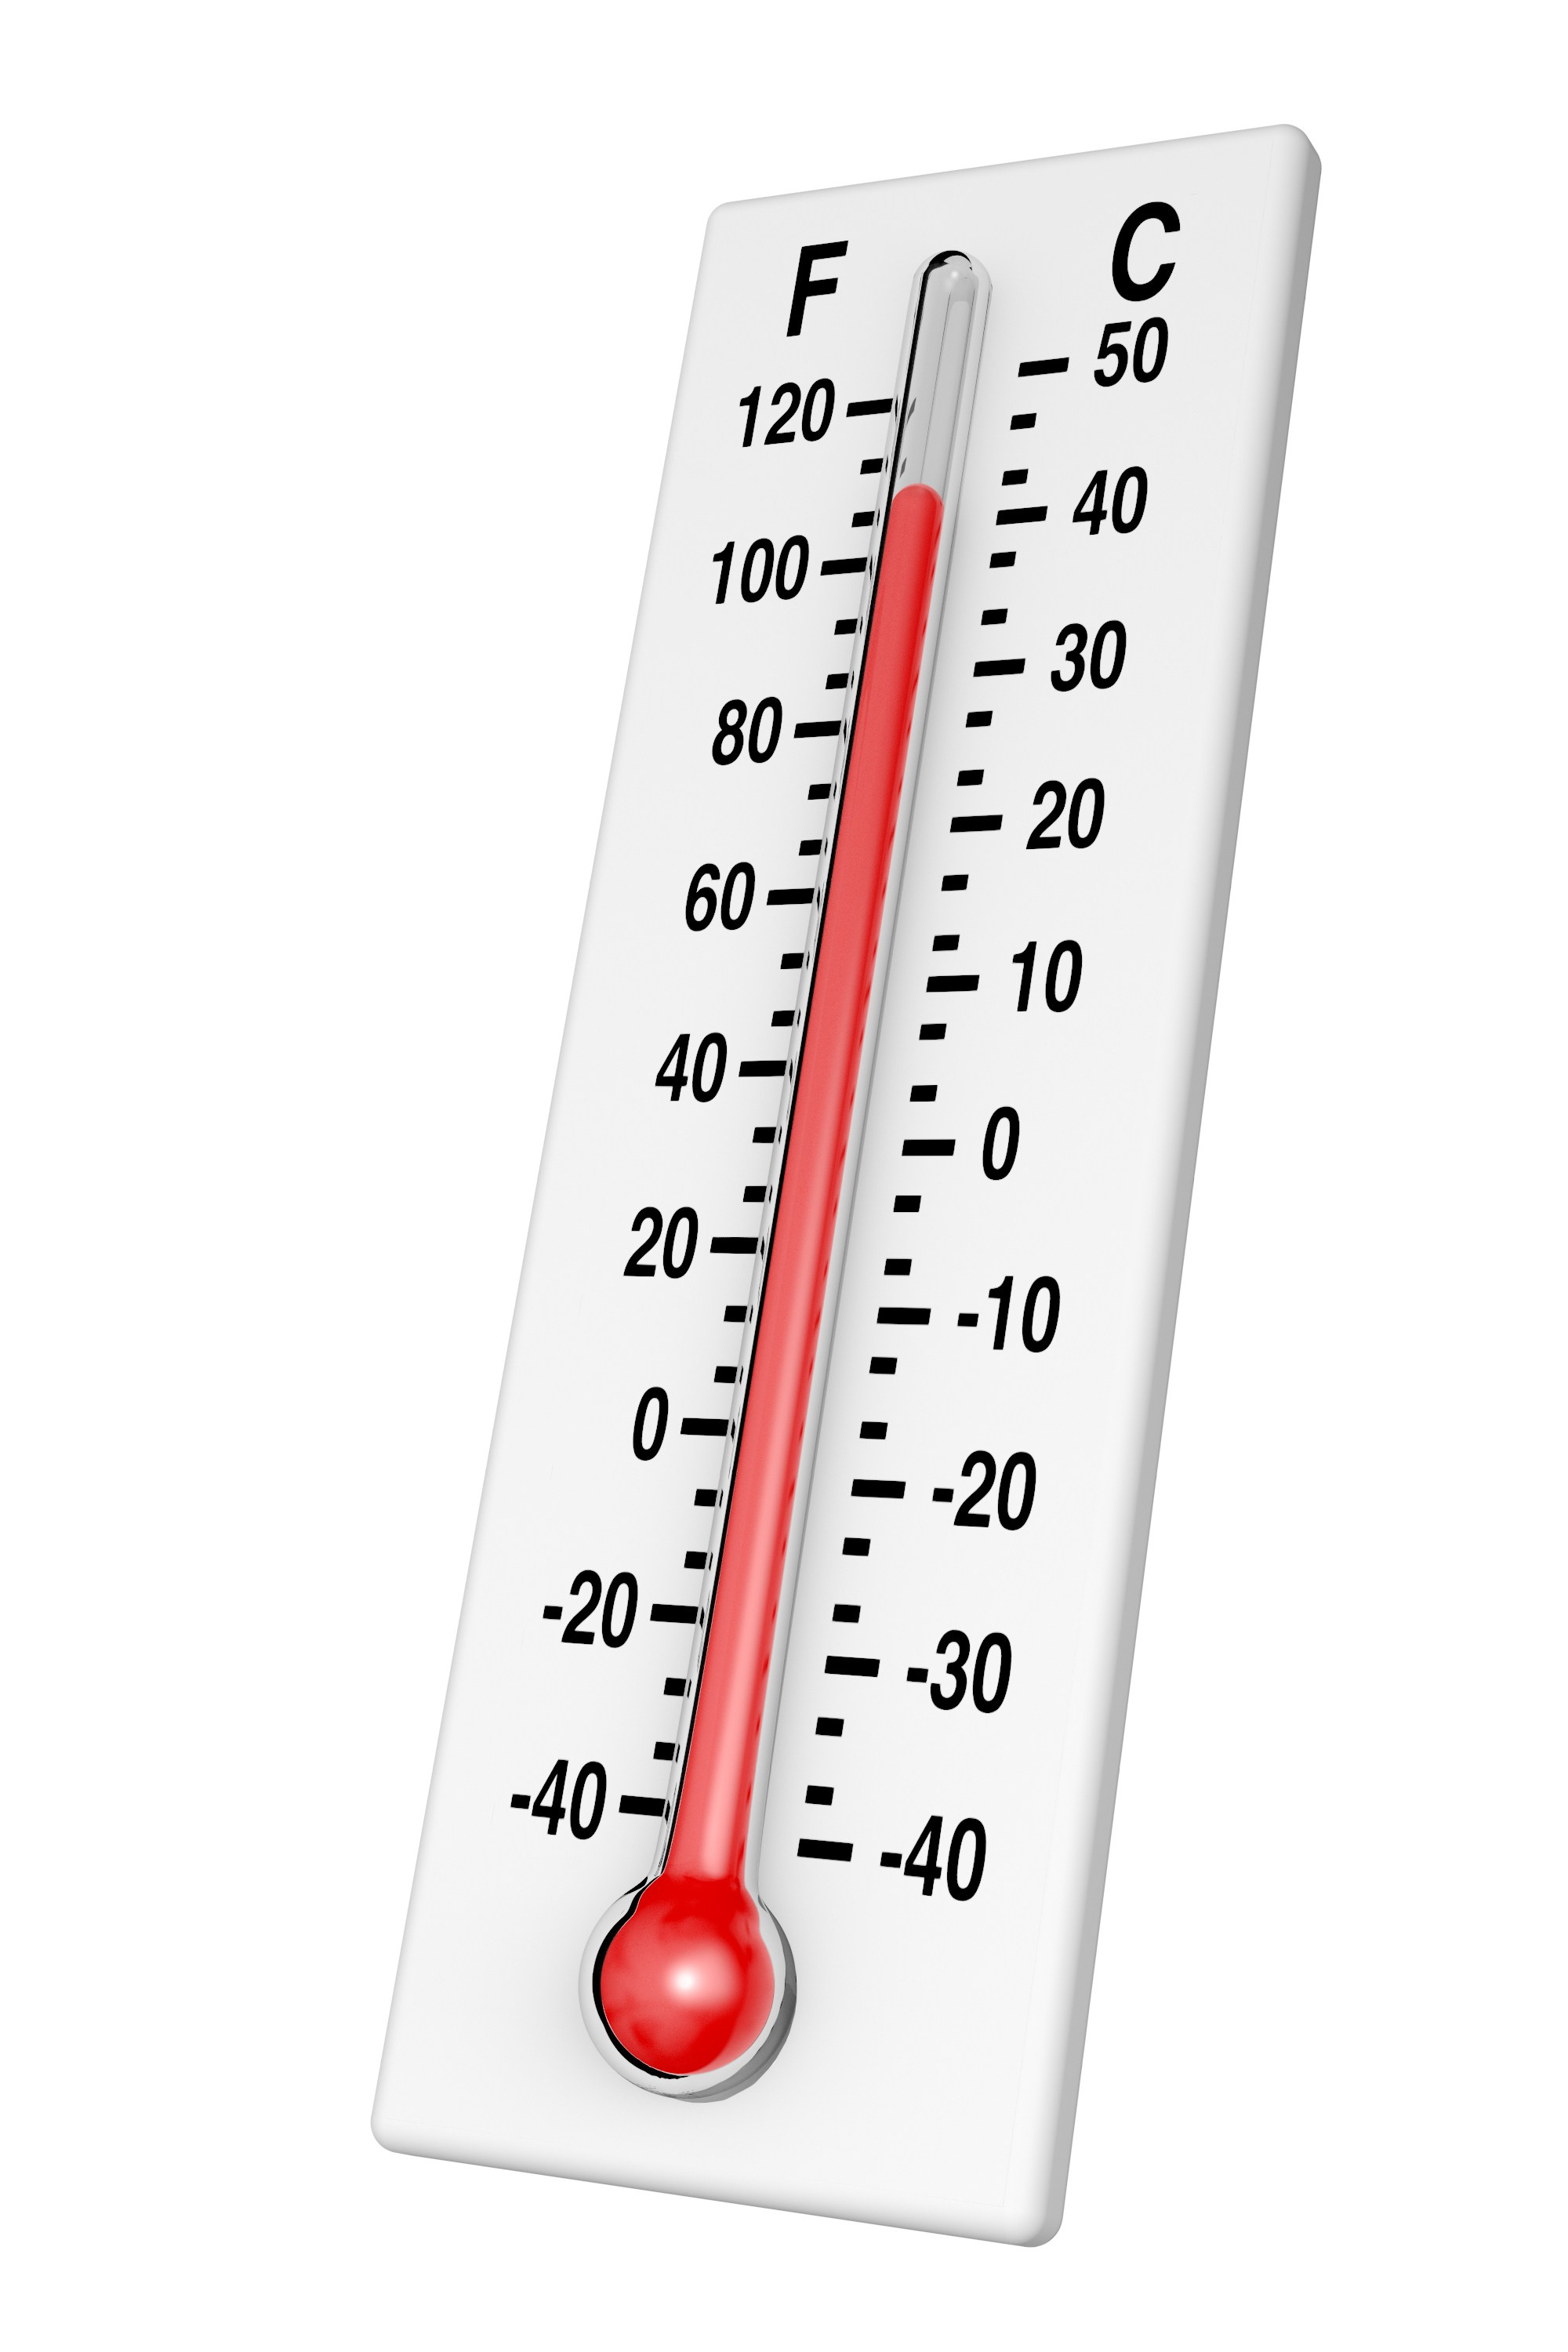 High quality fever thermometer clip art -High quality fever thermometer clip art photos-5